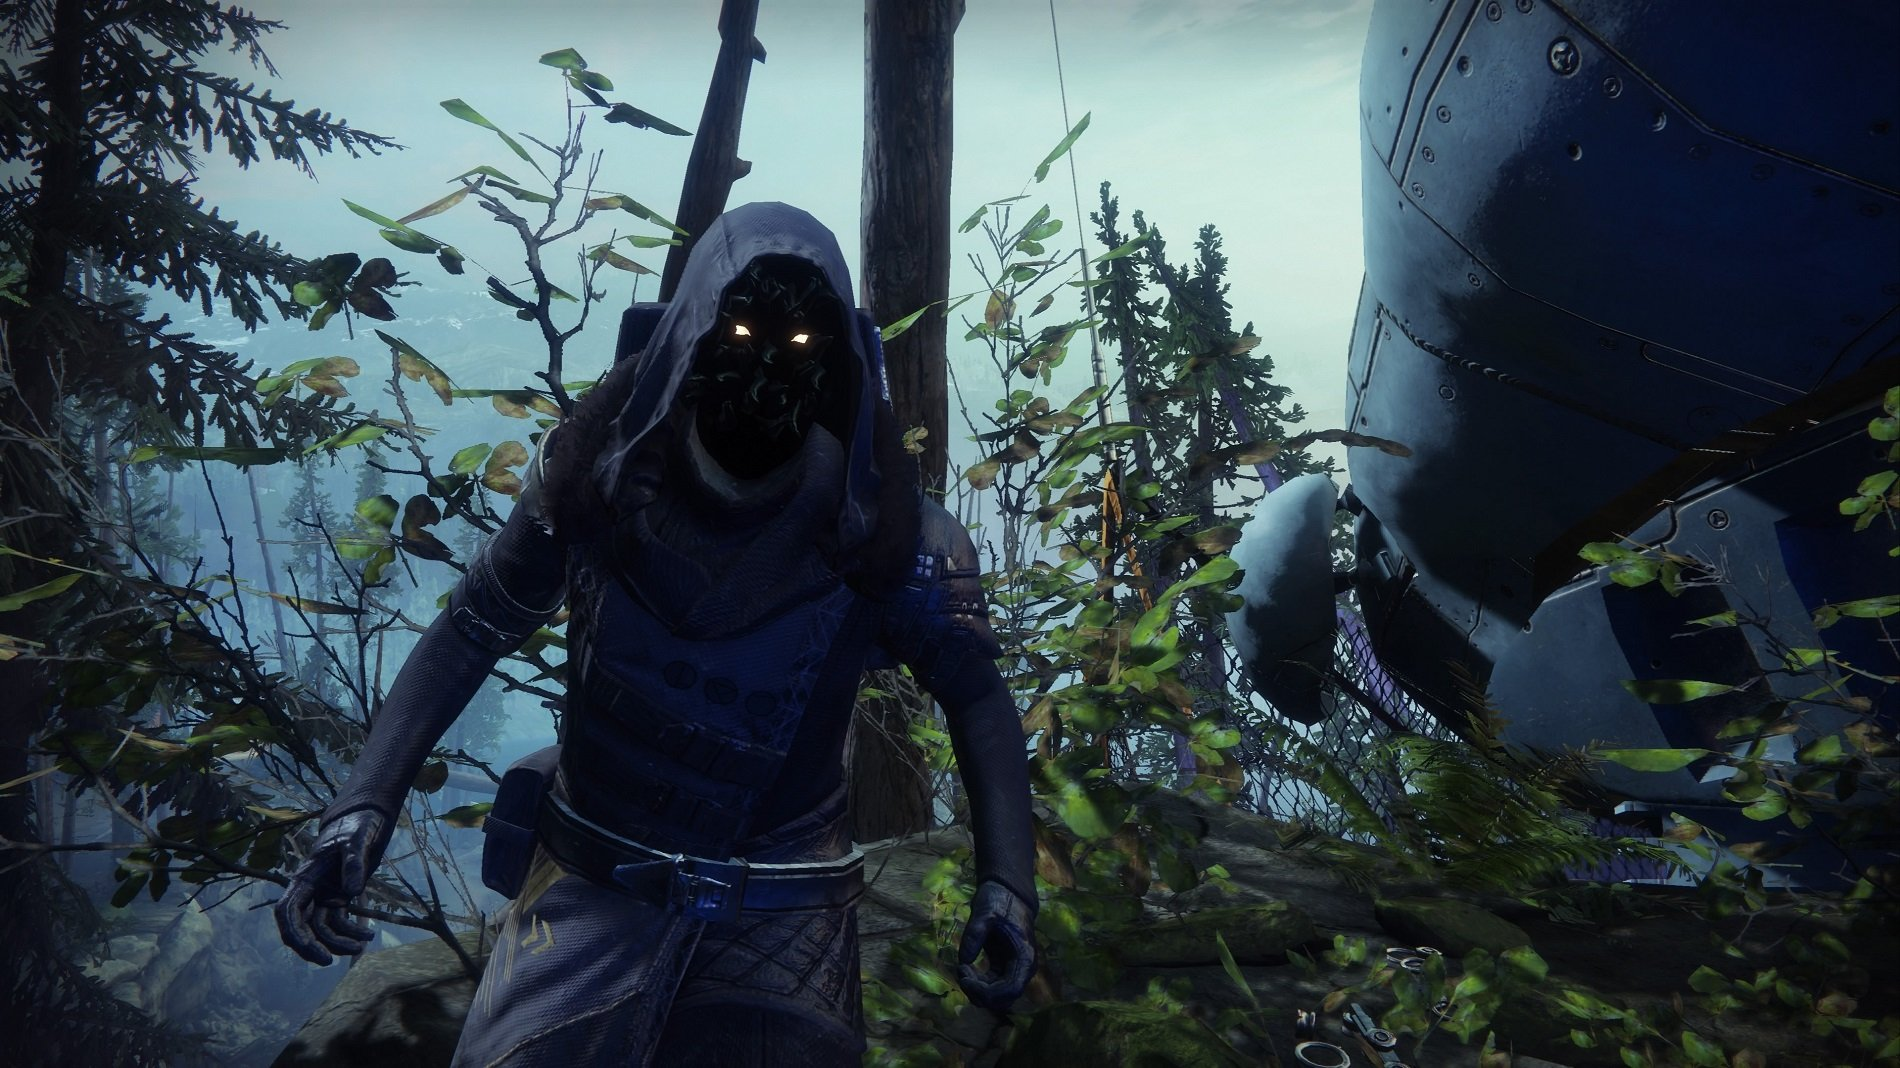 Where to find Xur in Destiny 2 - September 6, 2019